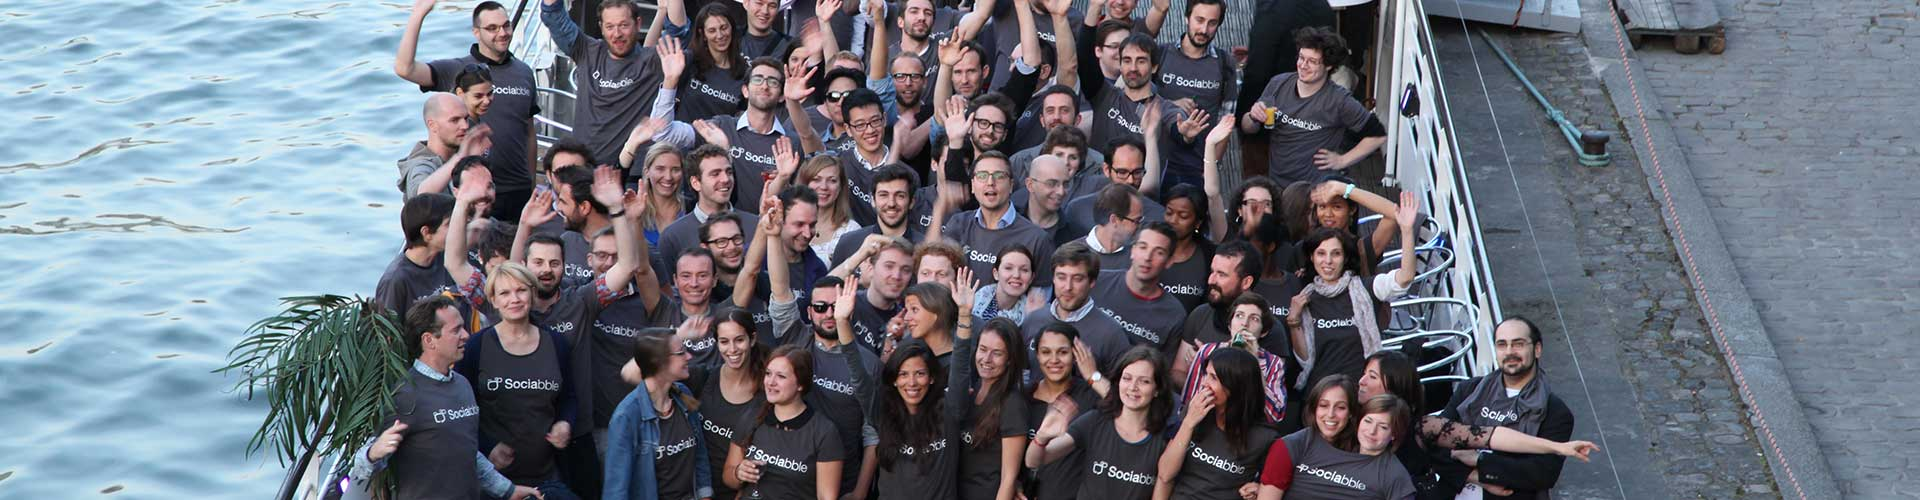 Sociabble Announces a Roundtable of $5M to Accelerate its Expansion in North America and Europe